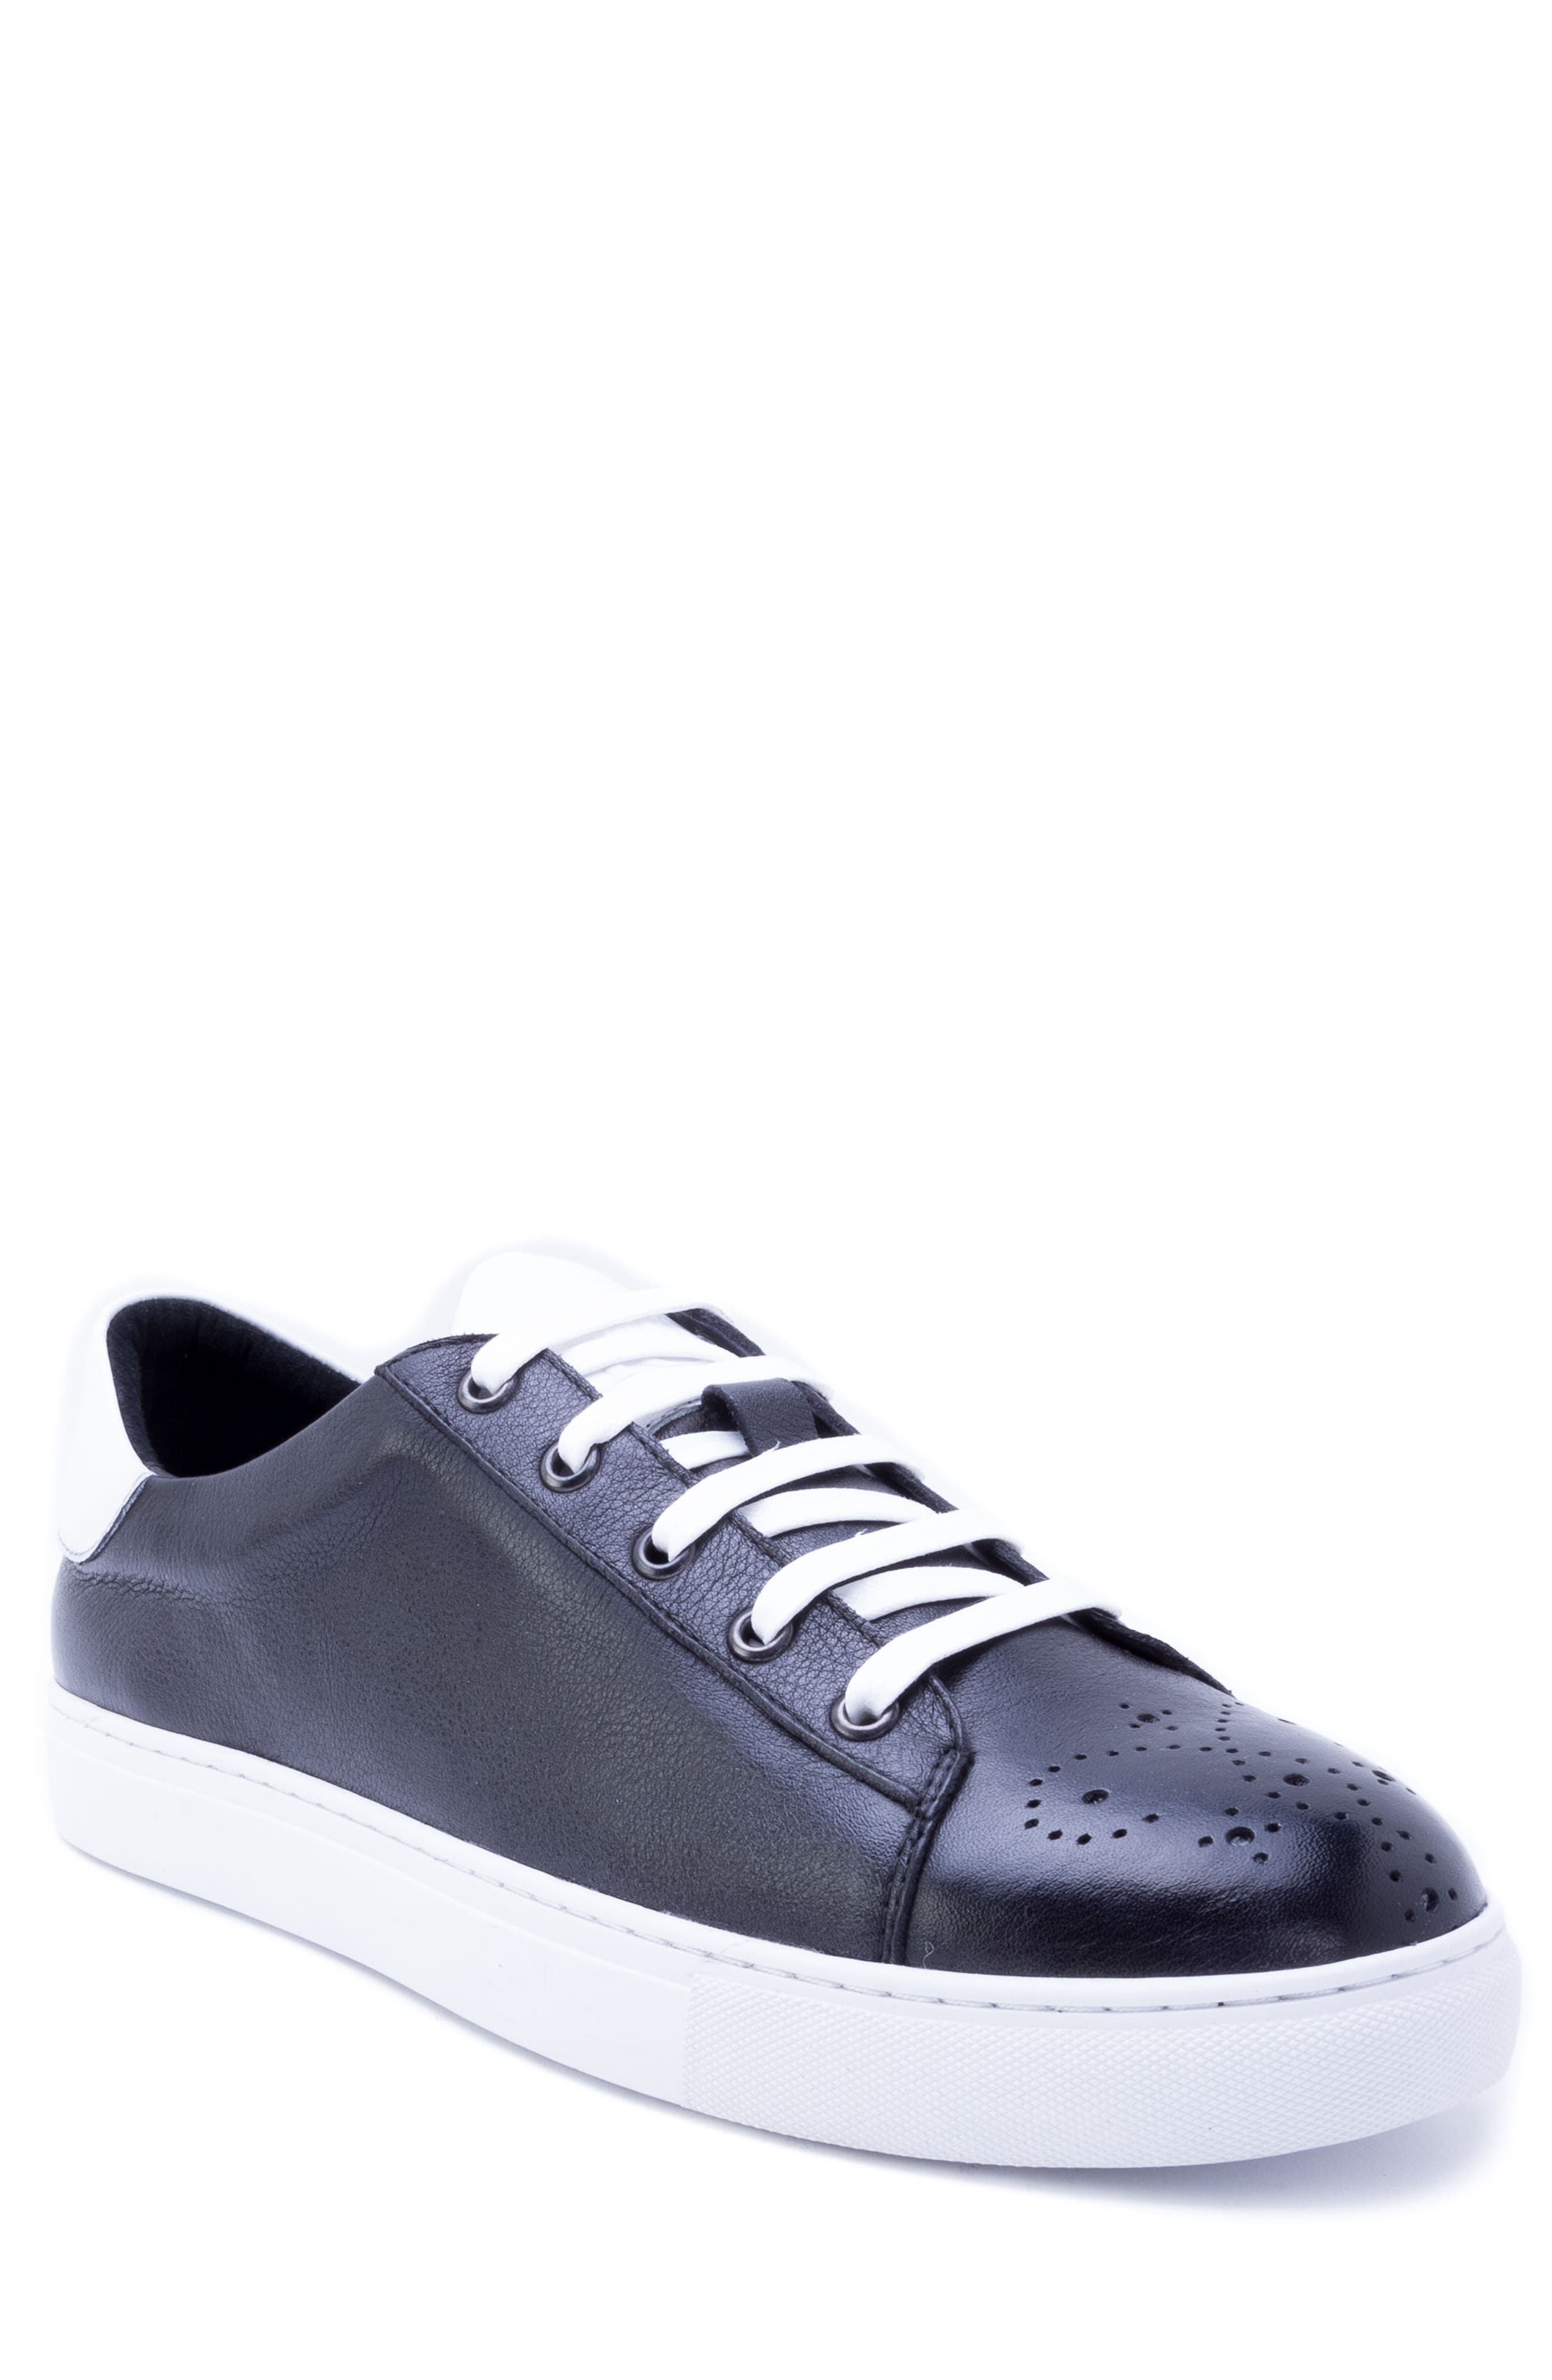 Sinatra Sneaker,                         Main,                         color, BLACK LEATHER